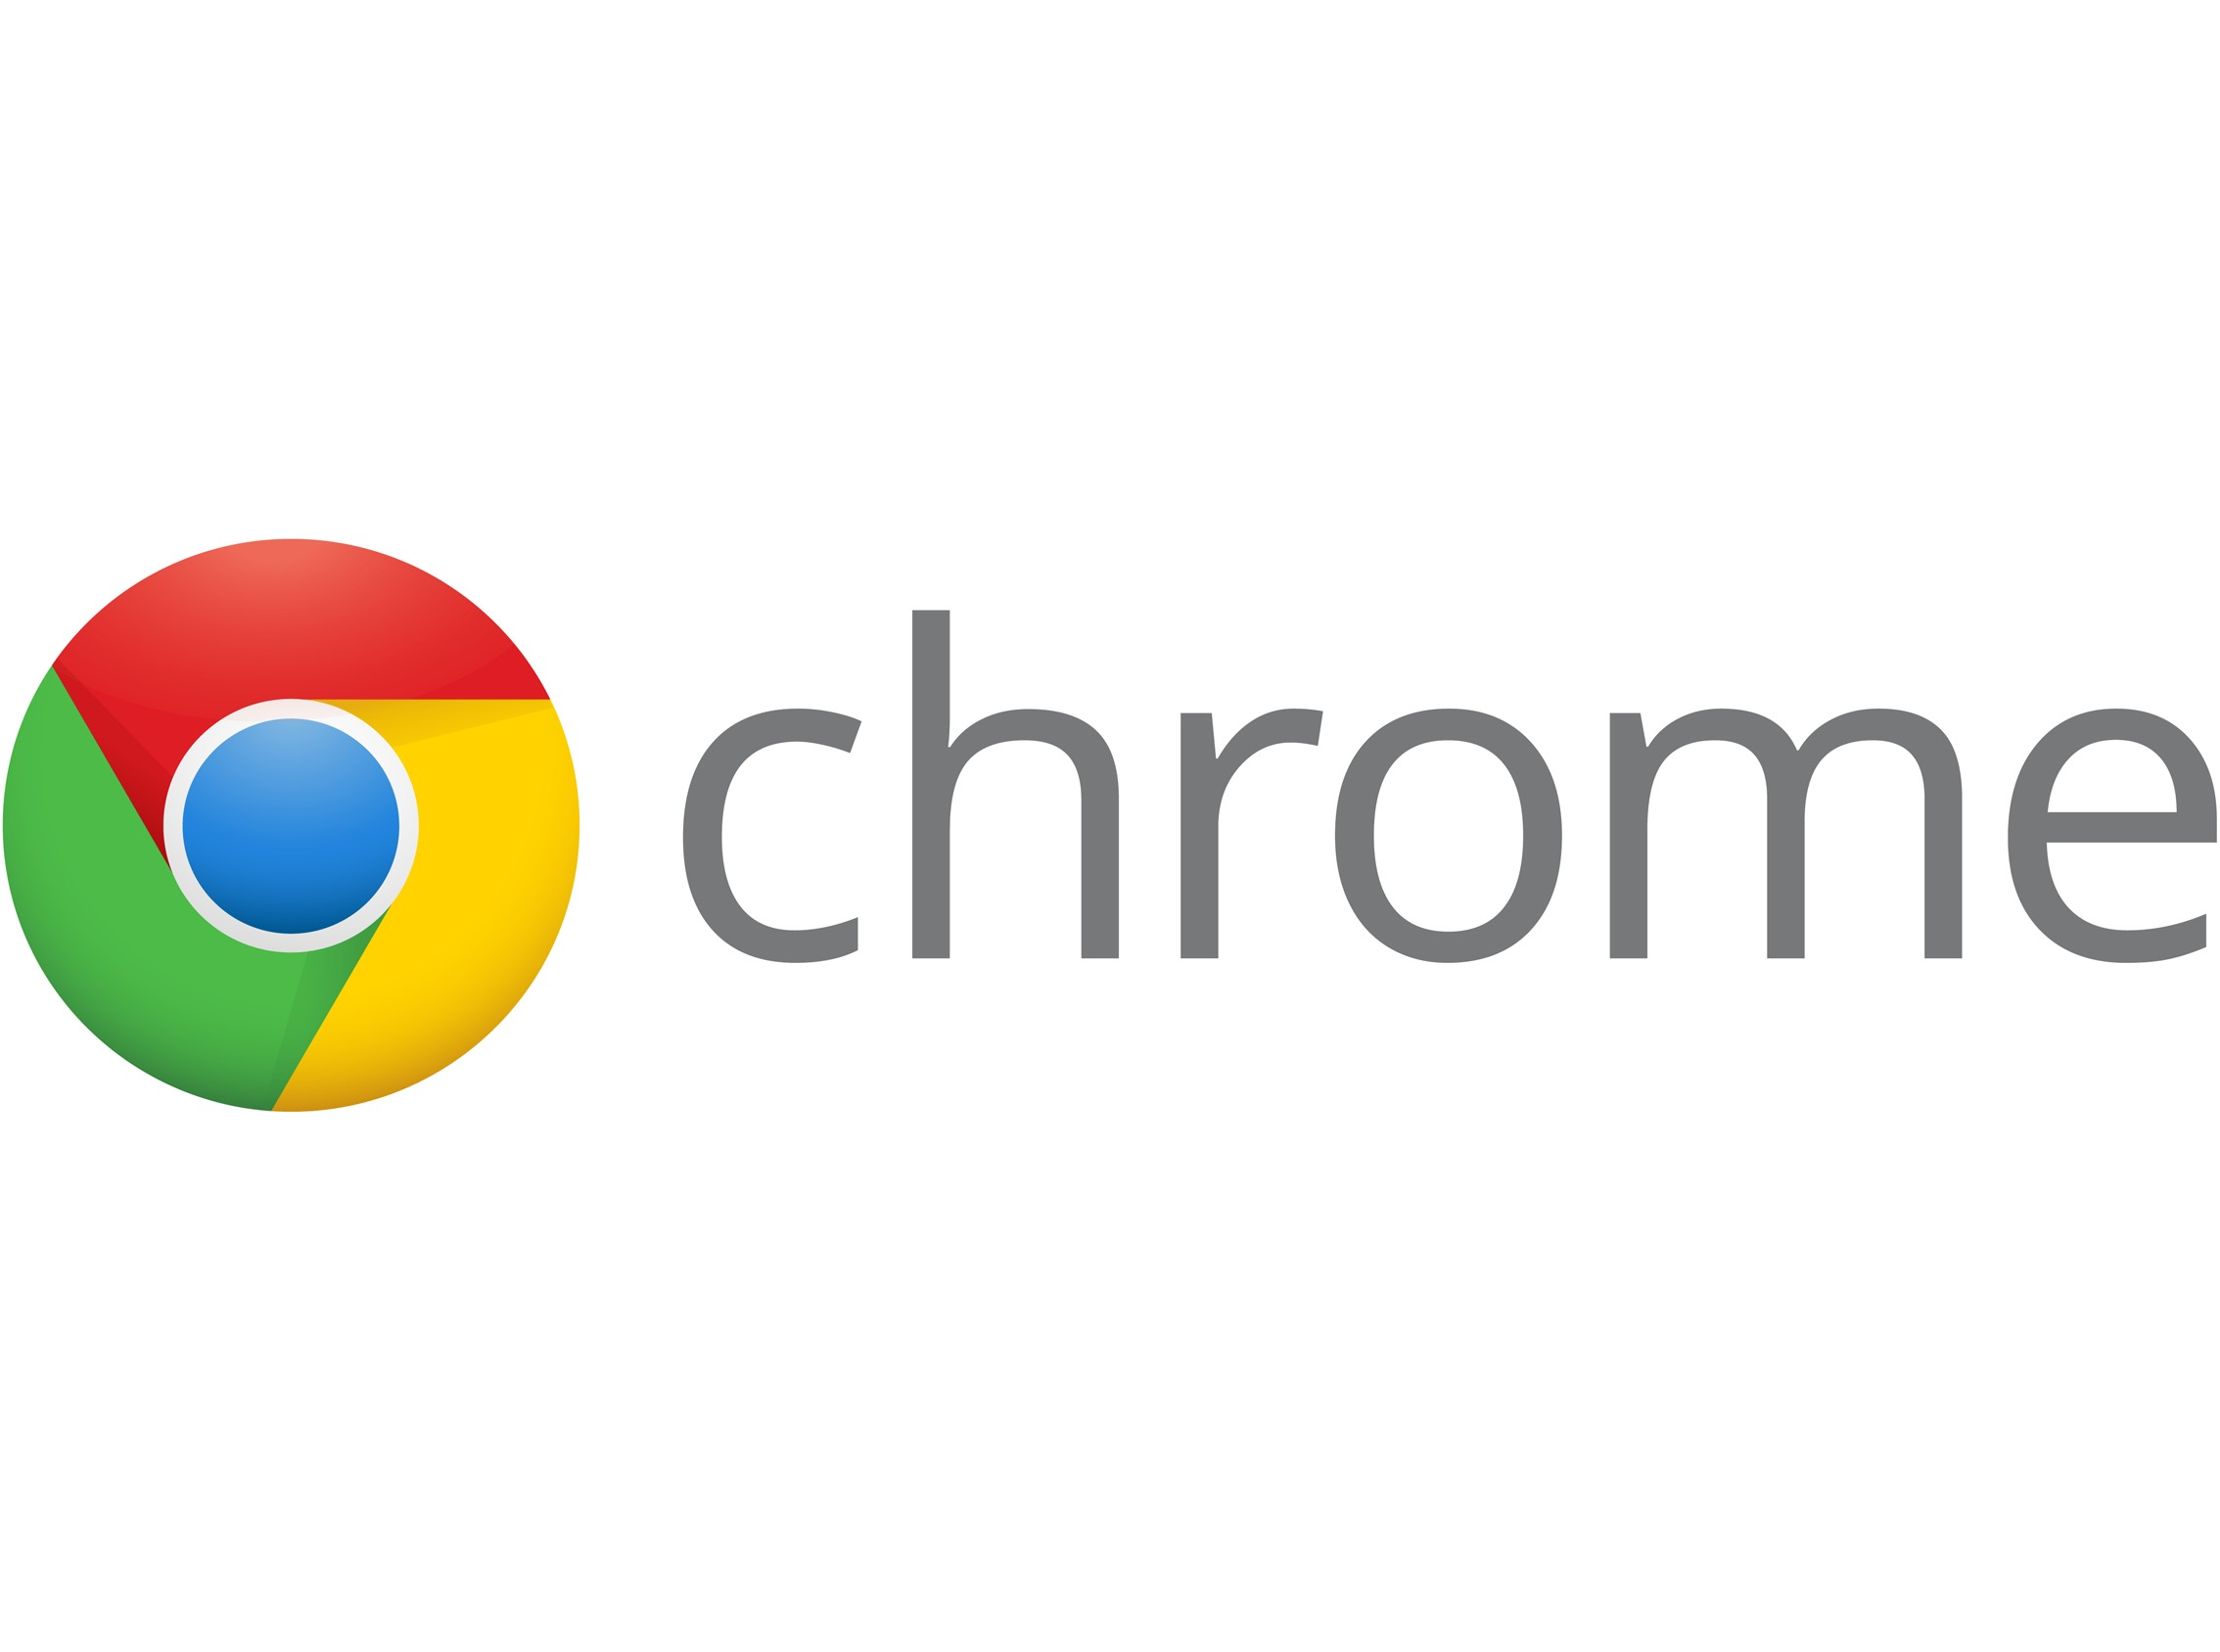 Скрытые функции браузера Google Chrome